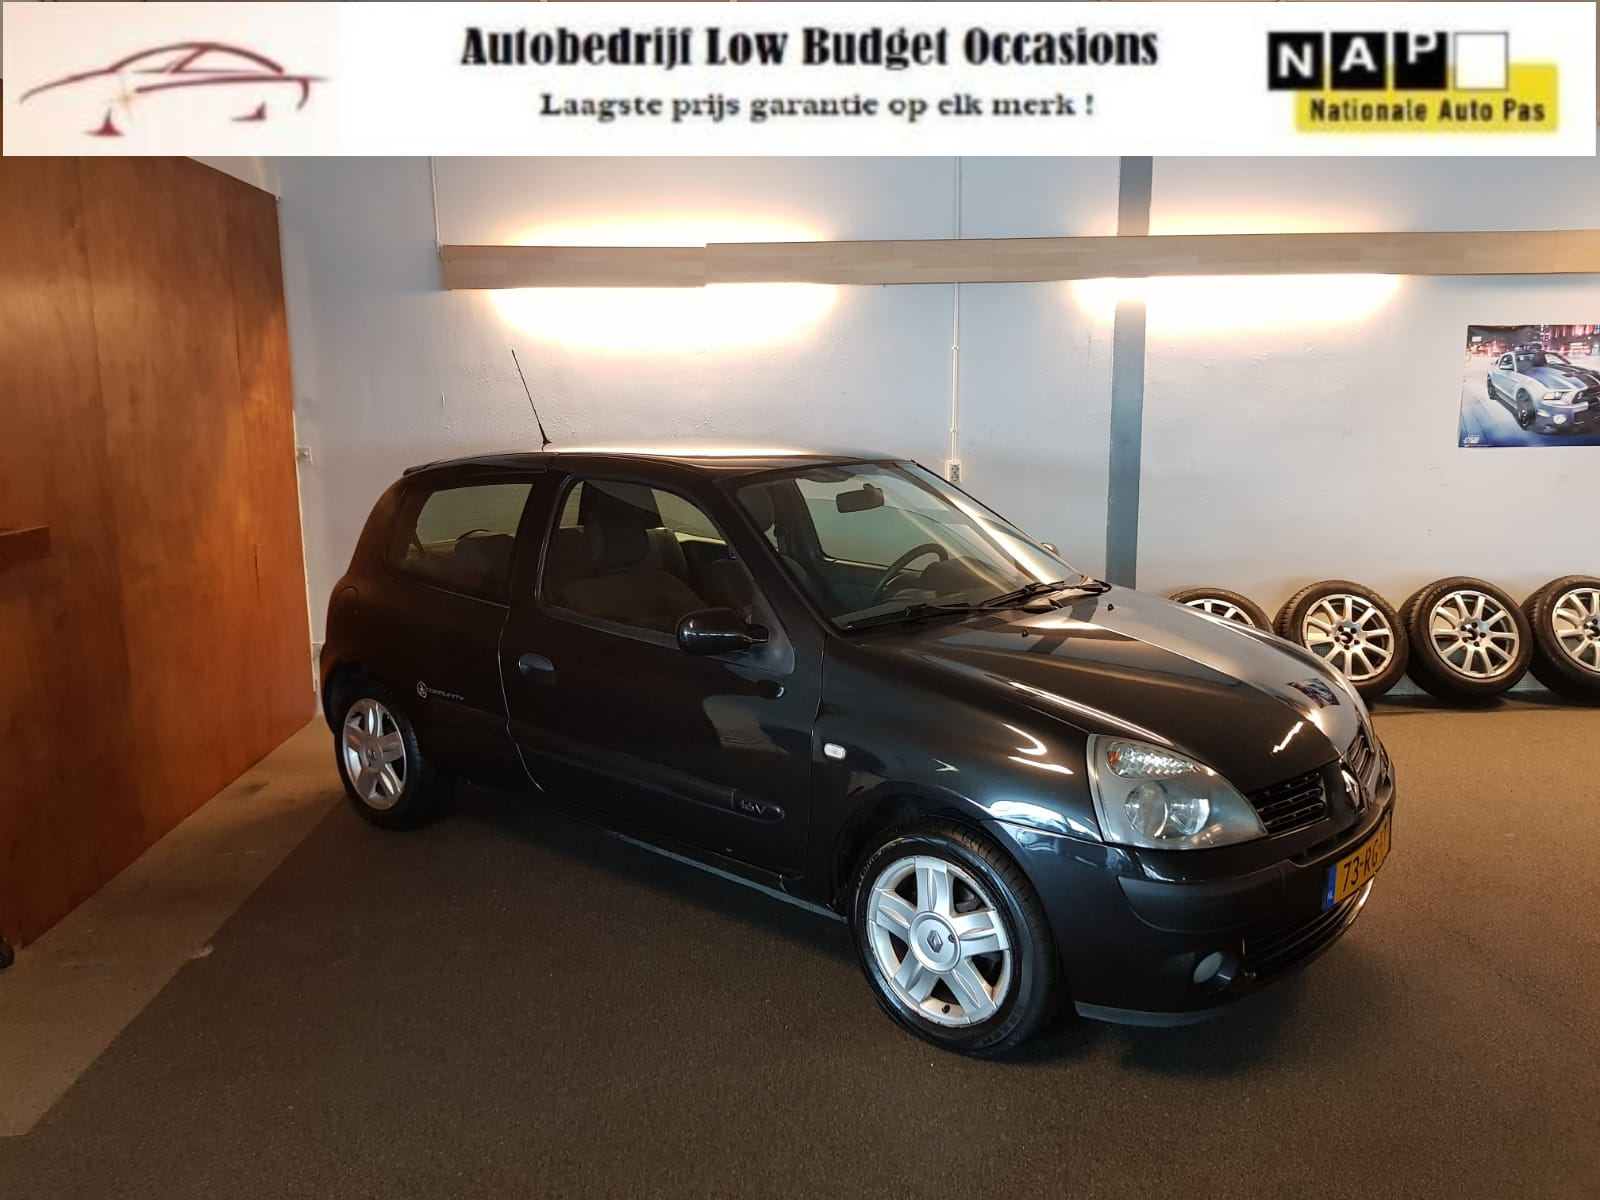 Renault Clio occasion - Low Budget Occasions